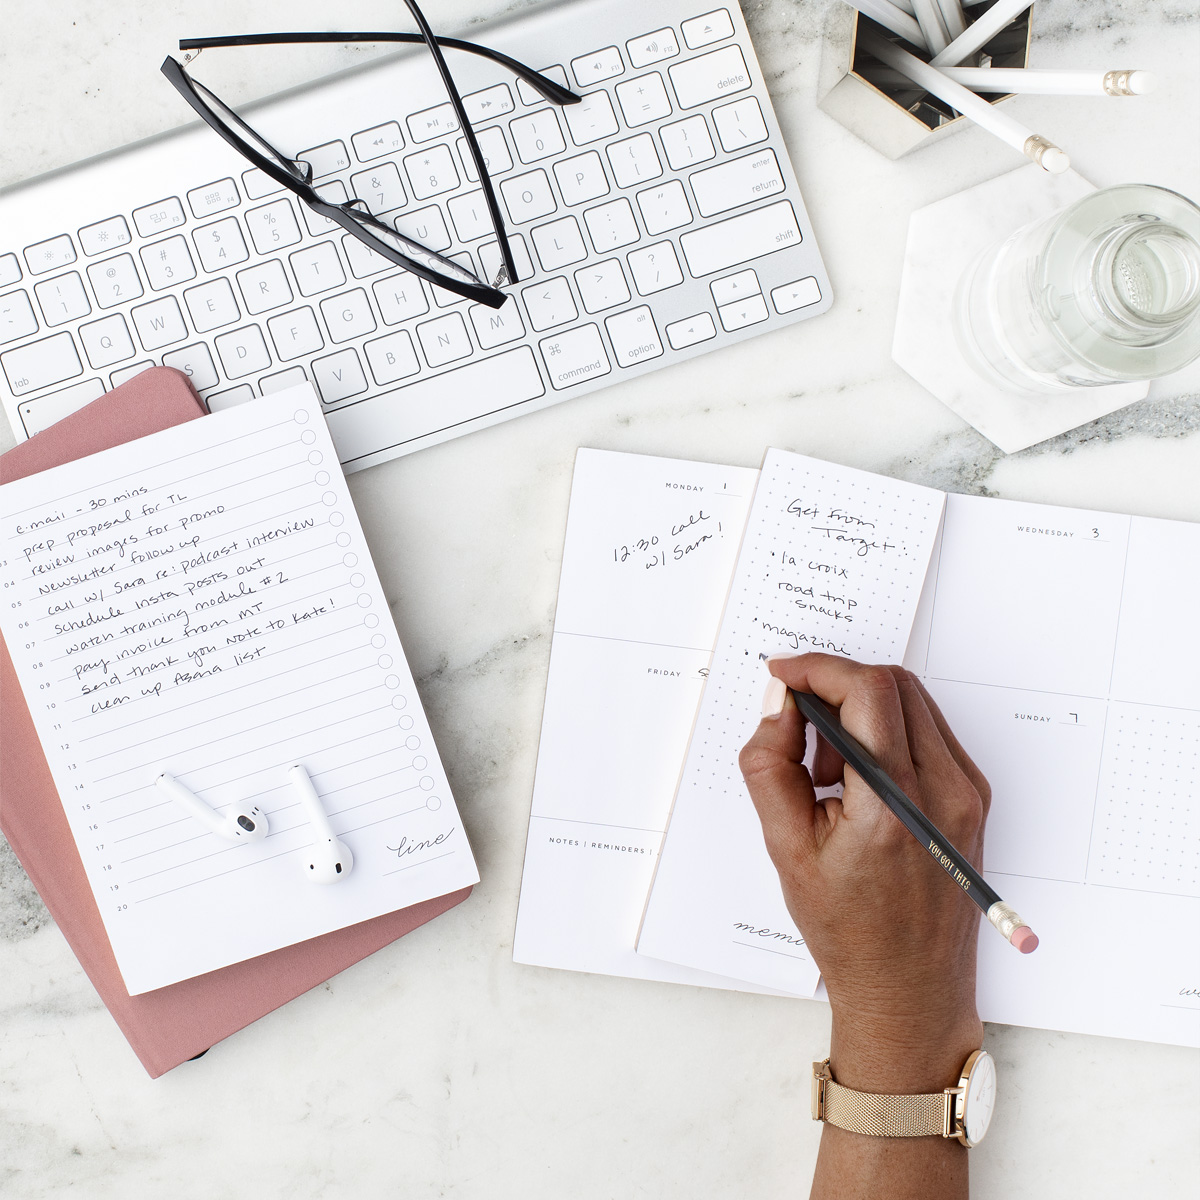 CHECK OUT MY career + business CALENDAR - As a girl boss myself, I find it necessary to share things that I learn, people I've spoken to or interviewed. I genuinely believe in community over competition. With more entrepreneurs, there are more jobs to offer and more families we can help feed.Scroll down